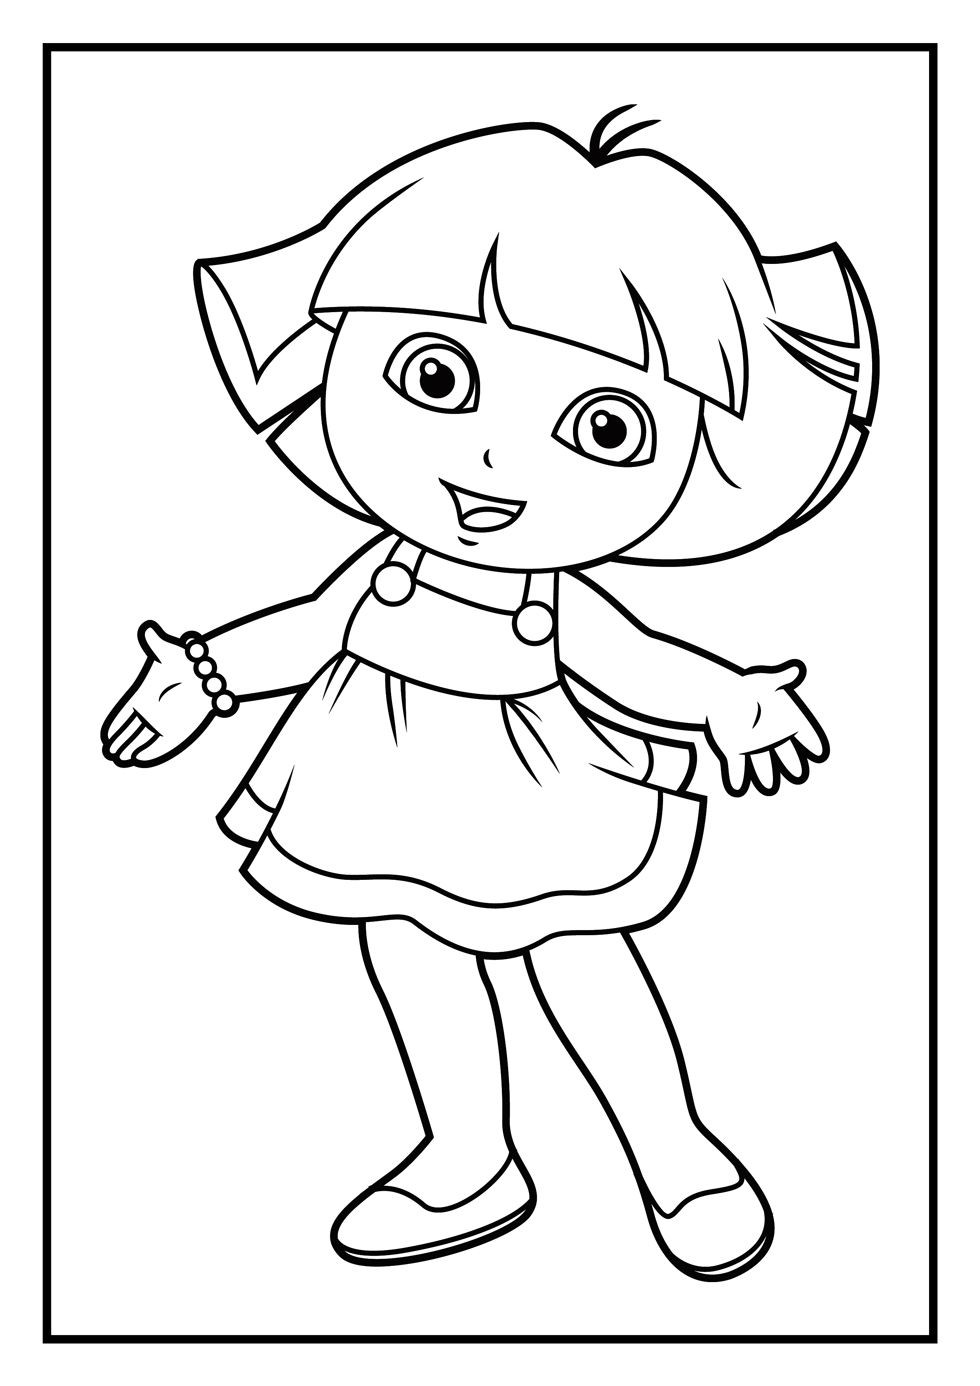 Free Coloring Pages For Girls Dora  dora the explorer coloring pages 06